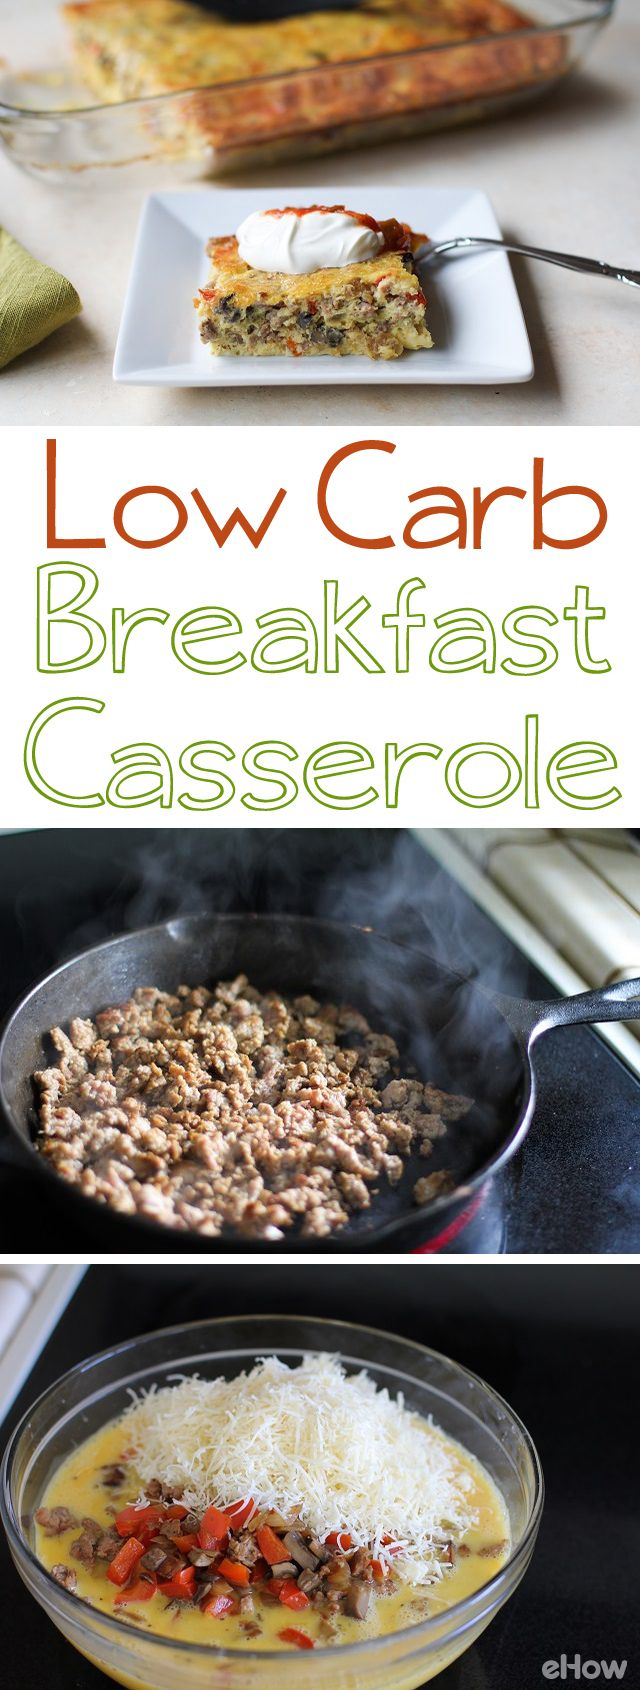 While comforting breakfast food has the reputation for being unhealthy & loaded with carbs, it's possible to create a nutritious low-carb breakfast recipe. Breakfast casseroles (similar to a frittata) are easy to bake, feed plenty of people, and are a great go-to for those times you're looking for something filling that won't put you in a food coma. While bell pepper, onion & mushrooms, make this meal flavorful, you can also substitute in any of your favorite vegetables, and bacon and ham.